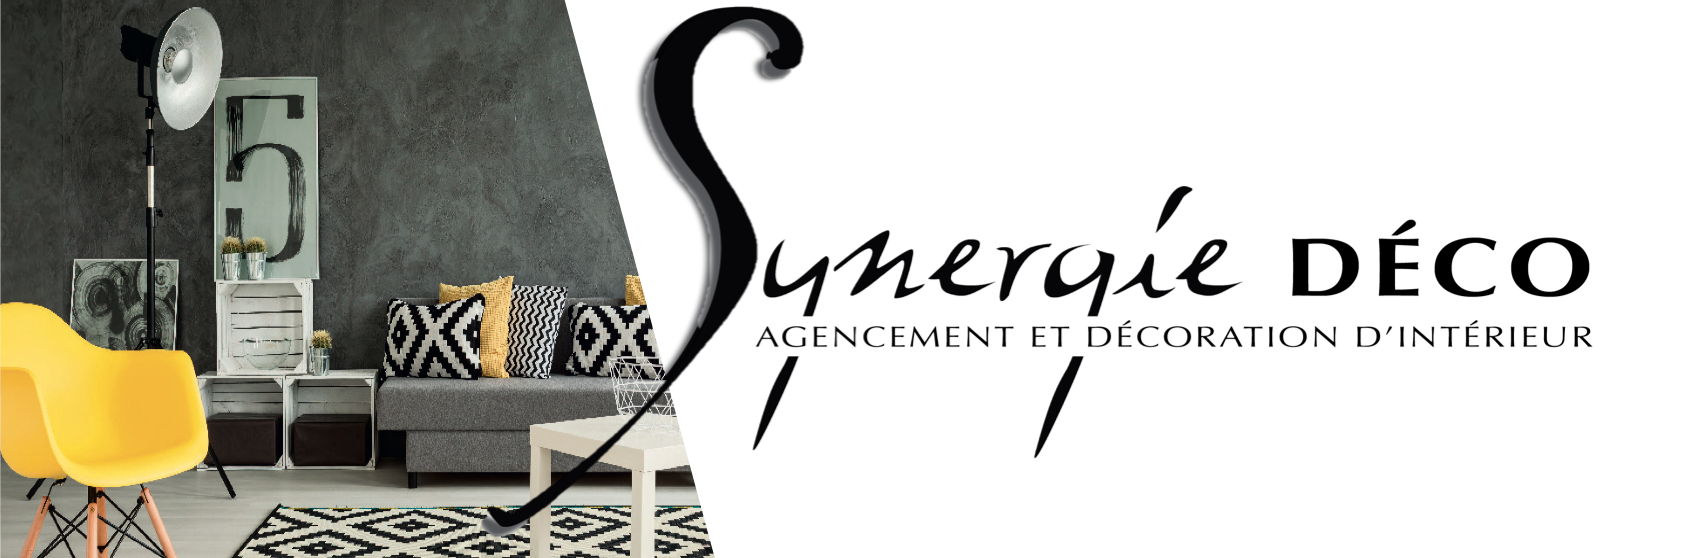 synergie dco